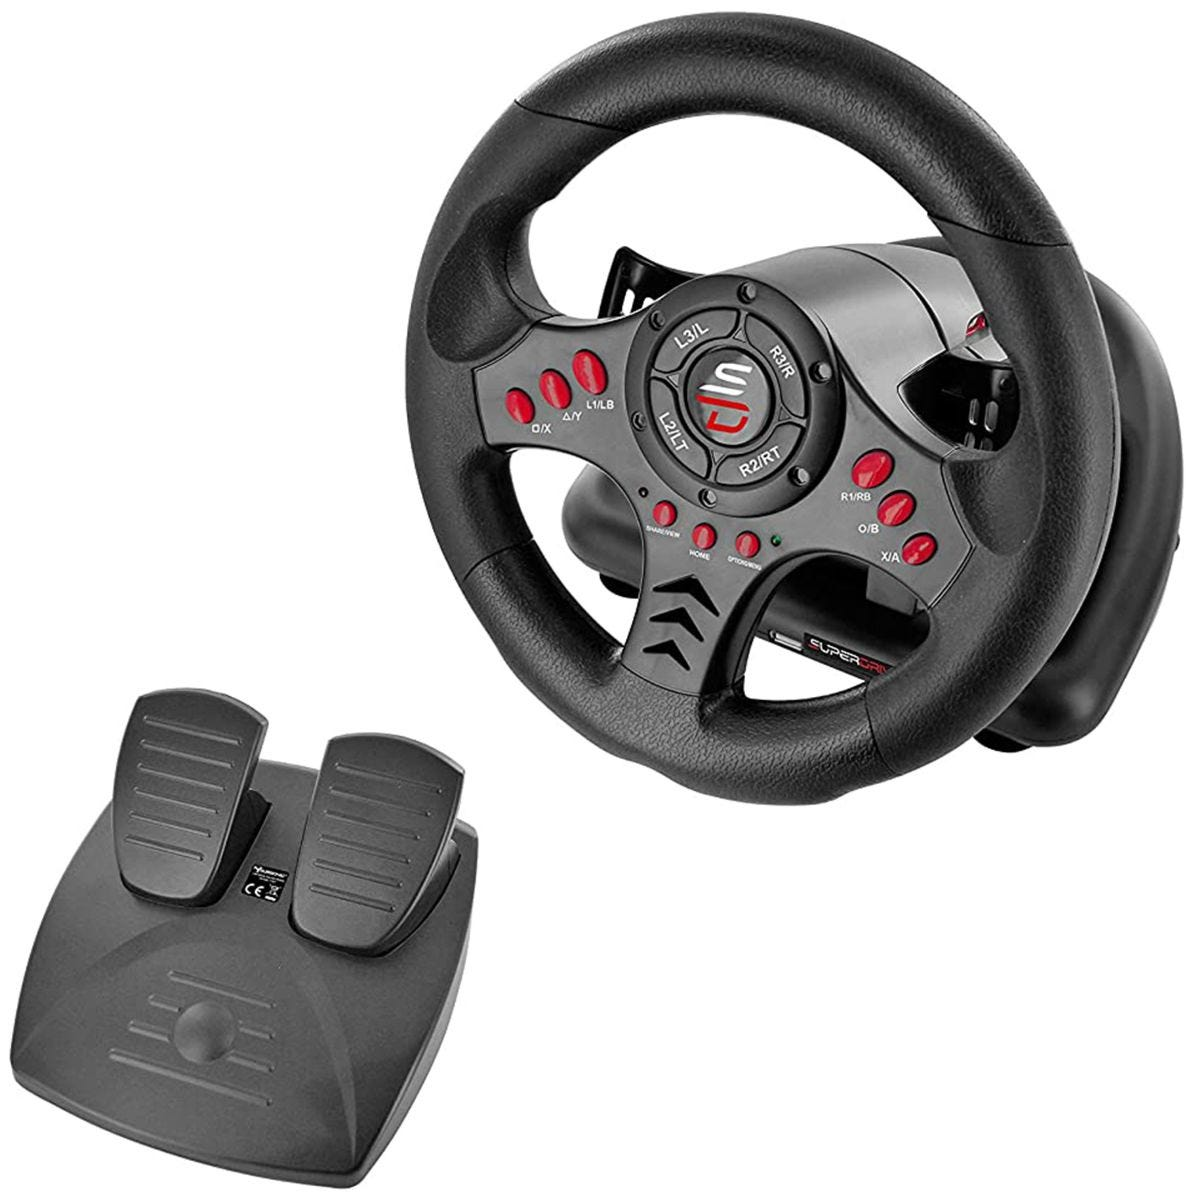 Superdrive SV400 Racing Wheel For PS4, Xbox One, PC & PS3 - Black